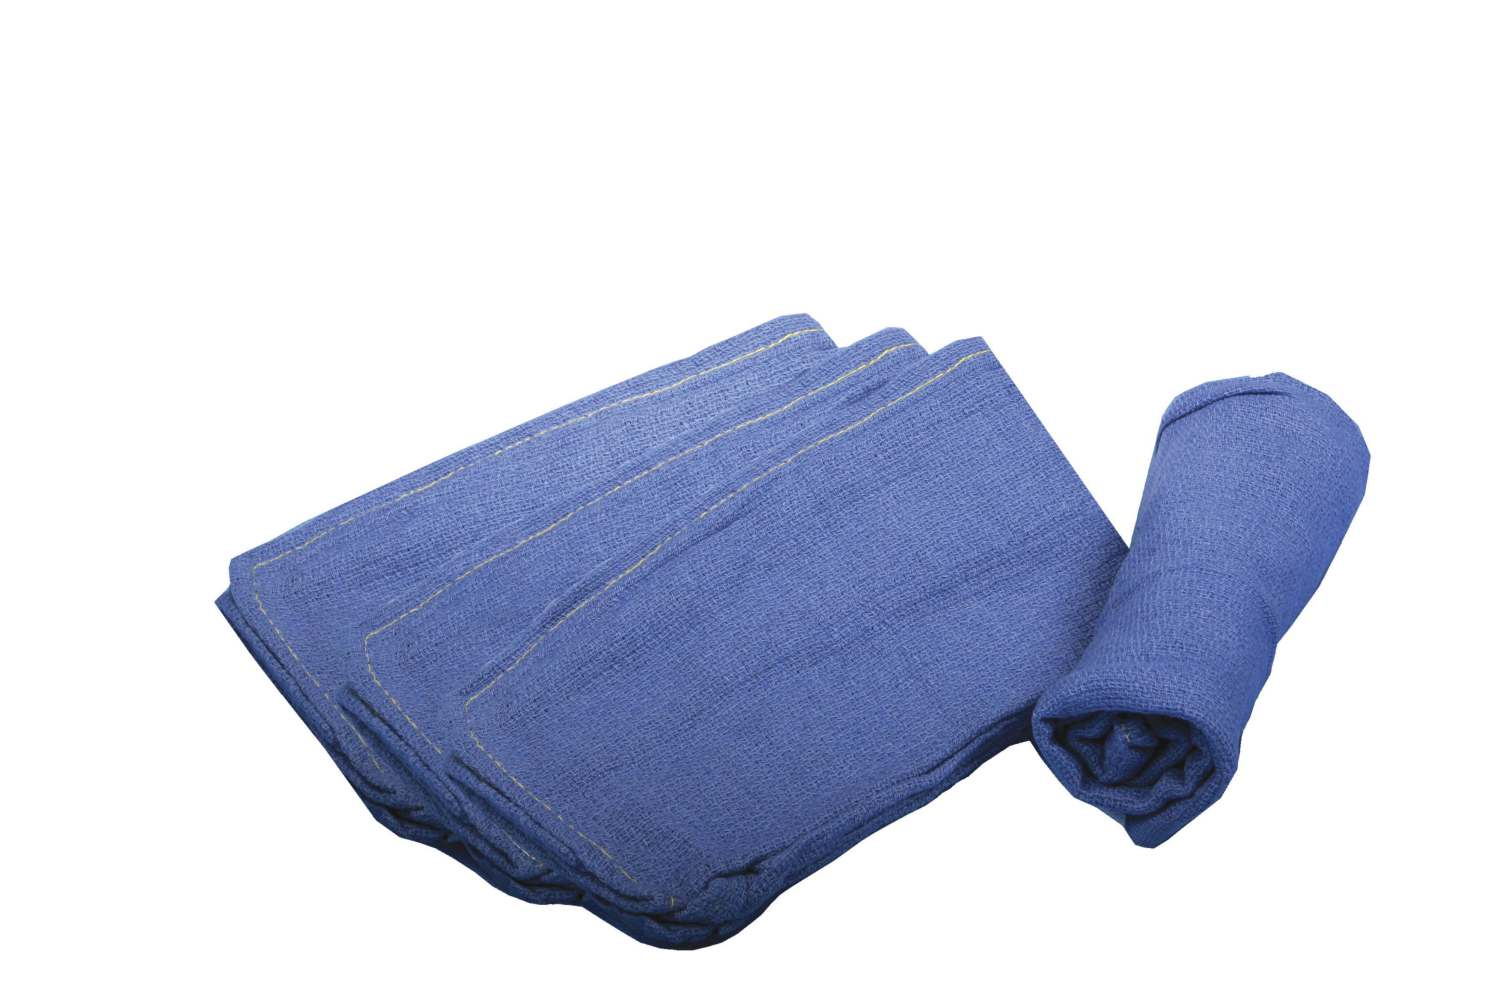 Sterile Disposable X-Ray Detectable OR Towel - Dsp, Blue, Dlx, Xr, Box of 80 - Model MDT2168204XR